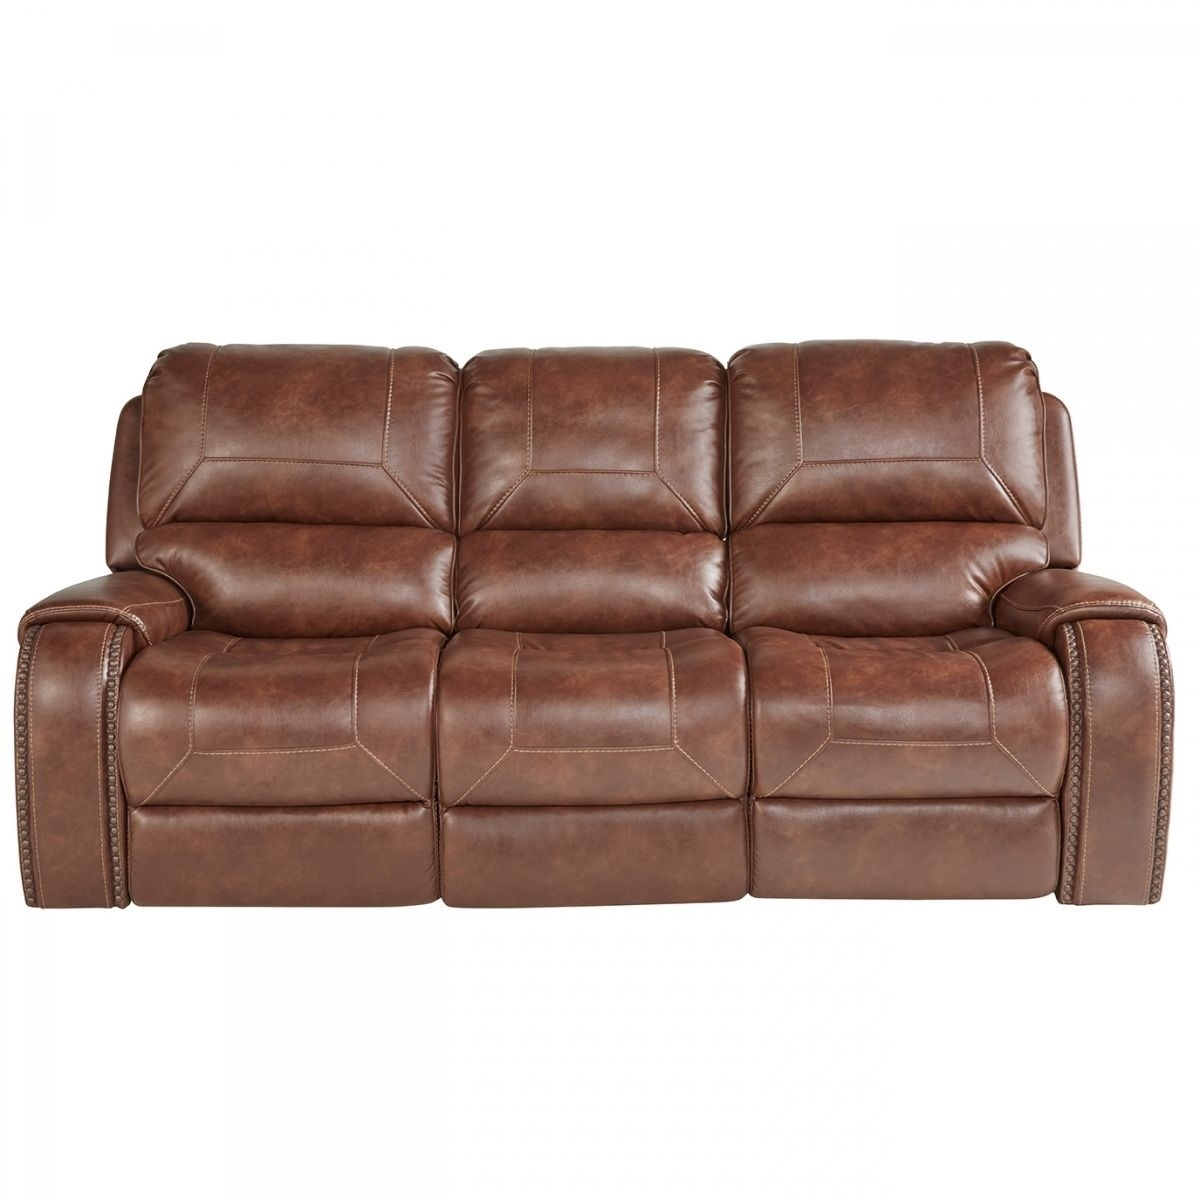 Buy Wescott Brown Reclining Sofa Online | Badcock & More with regard to Waylon 3 Piece Power Reclining Sectionals (Image 4 of 30)